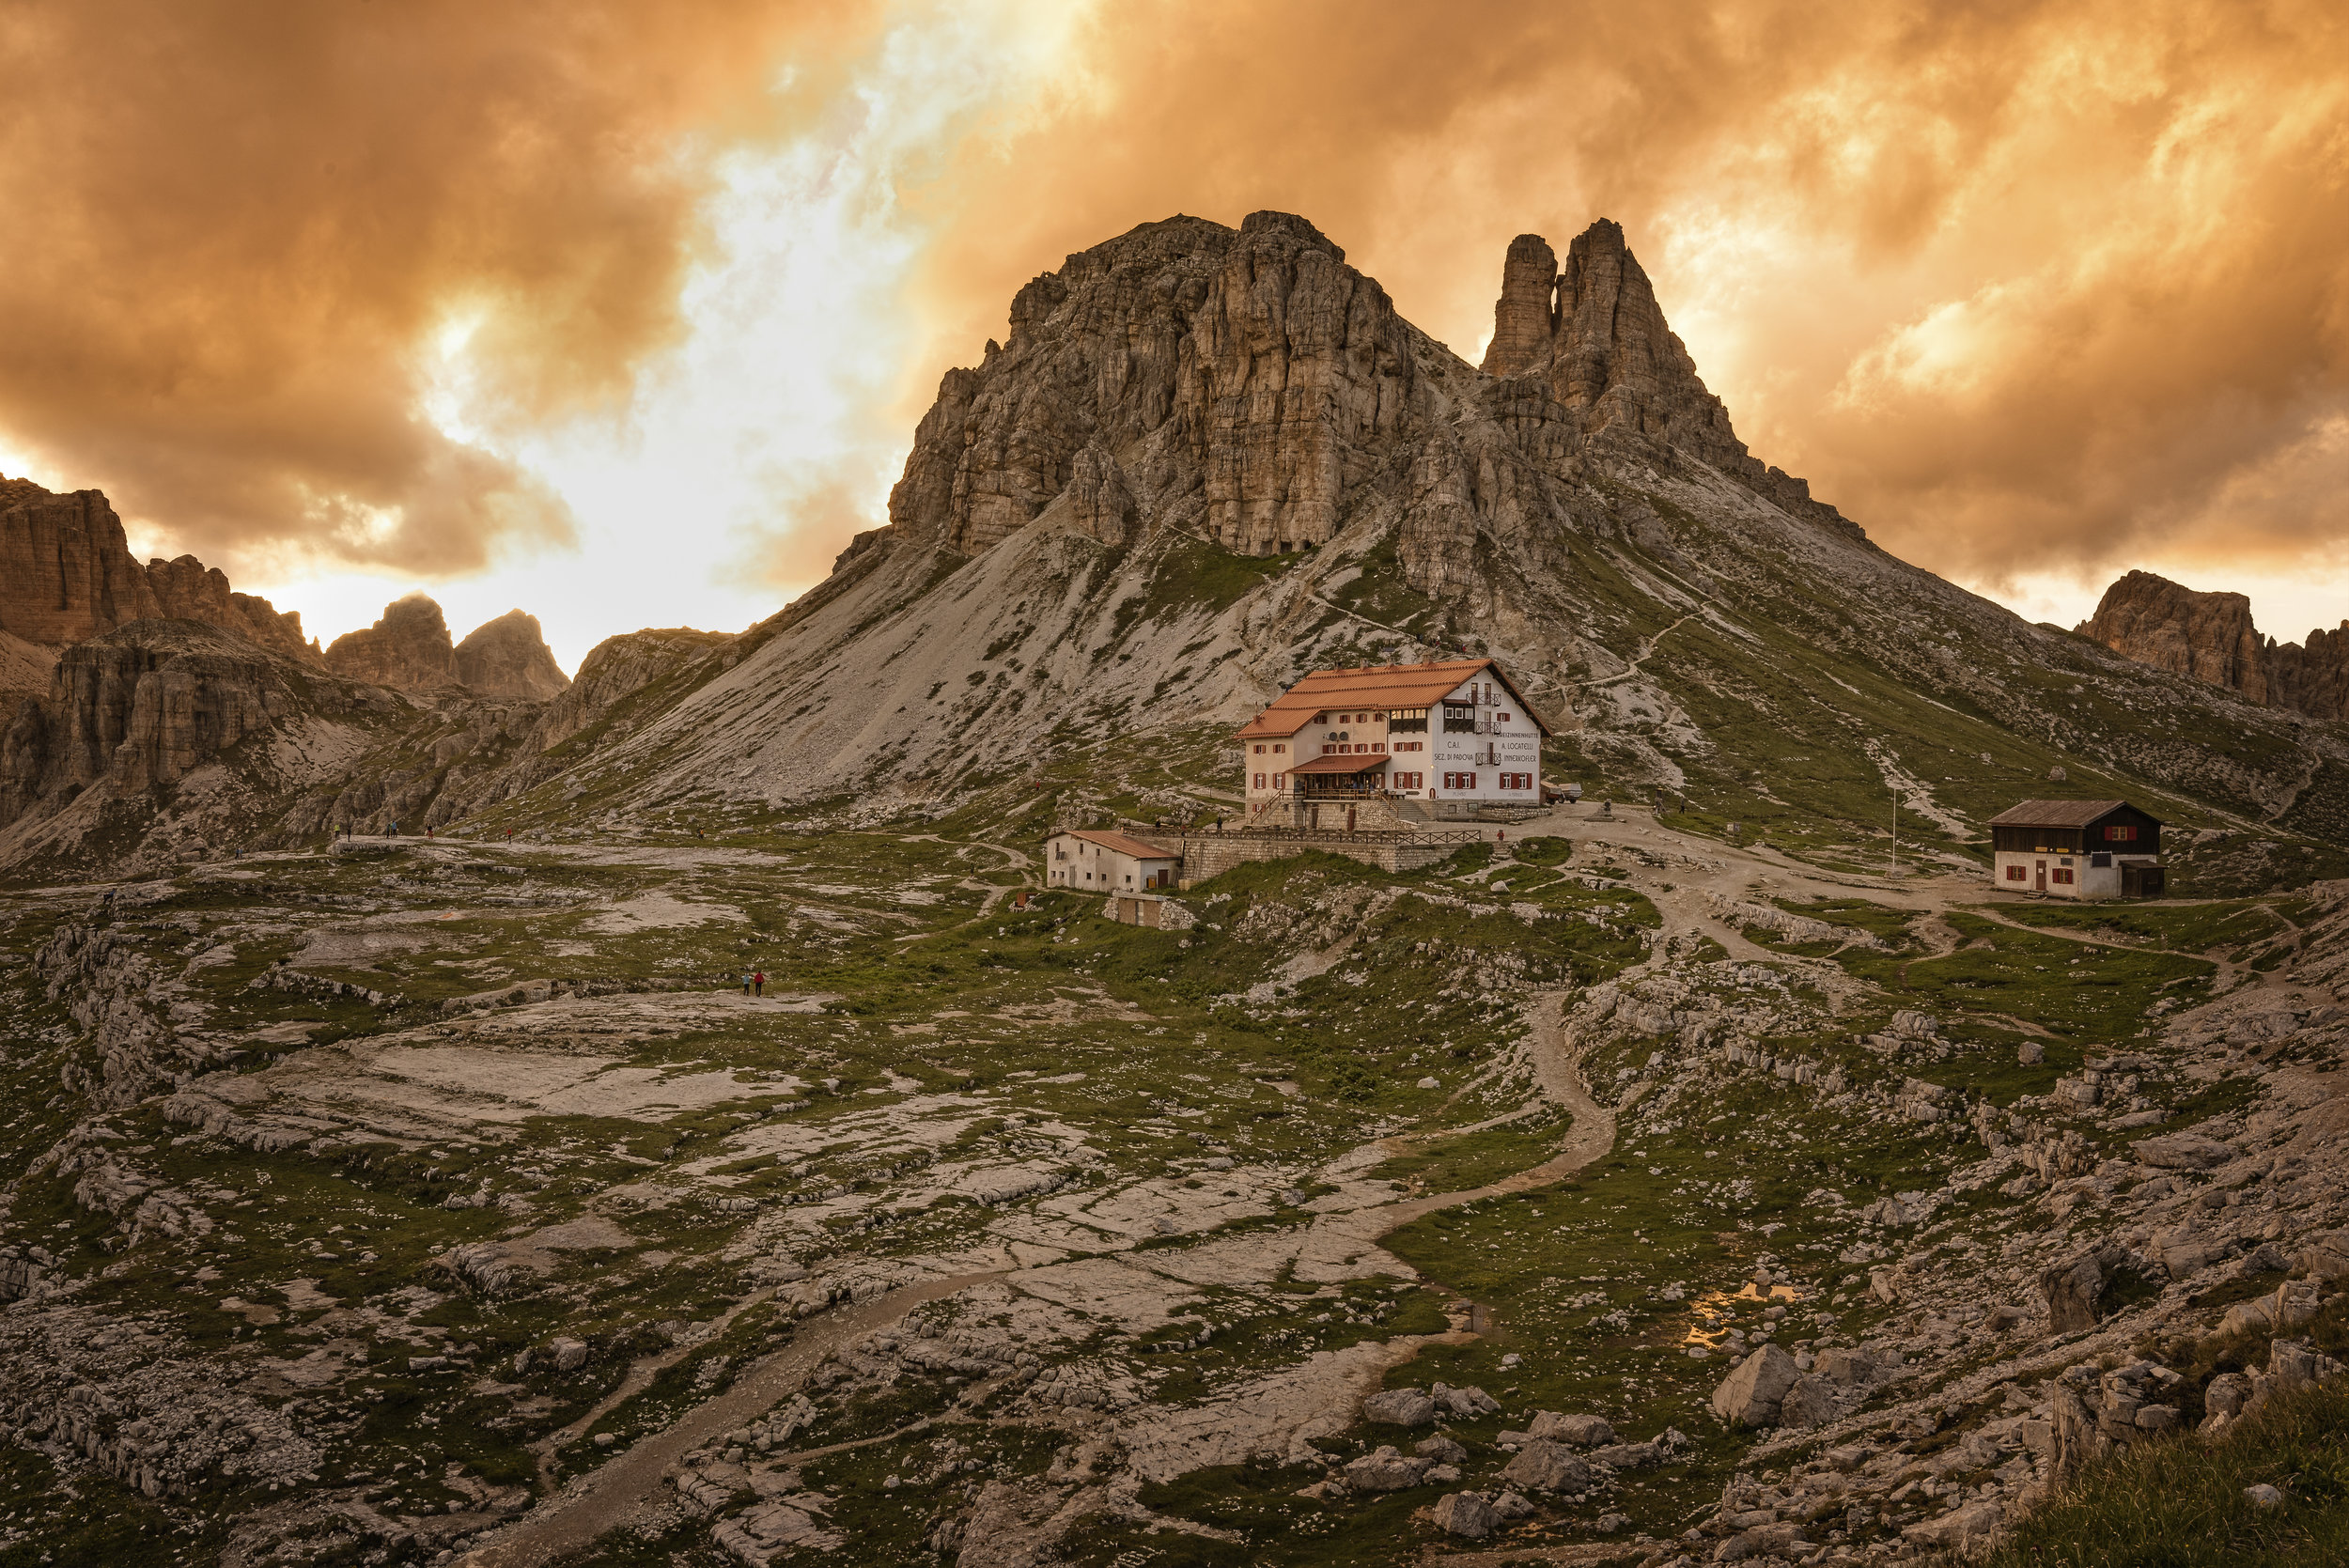 Our little home in the Dolomites. It only went downhill from here :-)